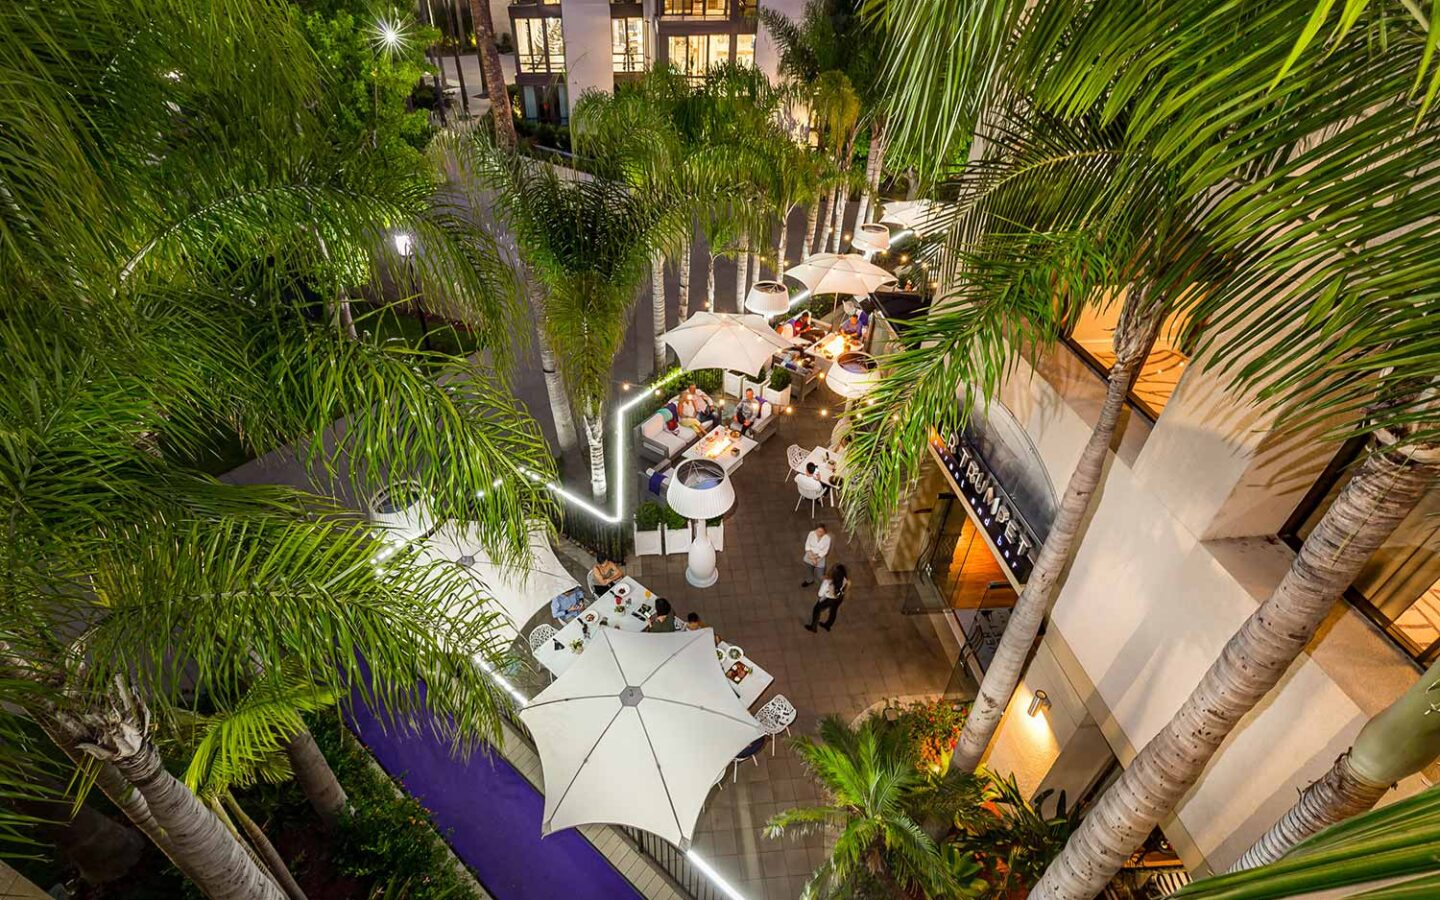 outdoor dining patio at Silver Trumpet Restaurant under umbrellas and trees